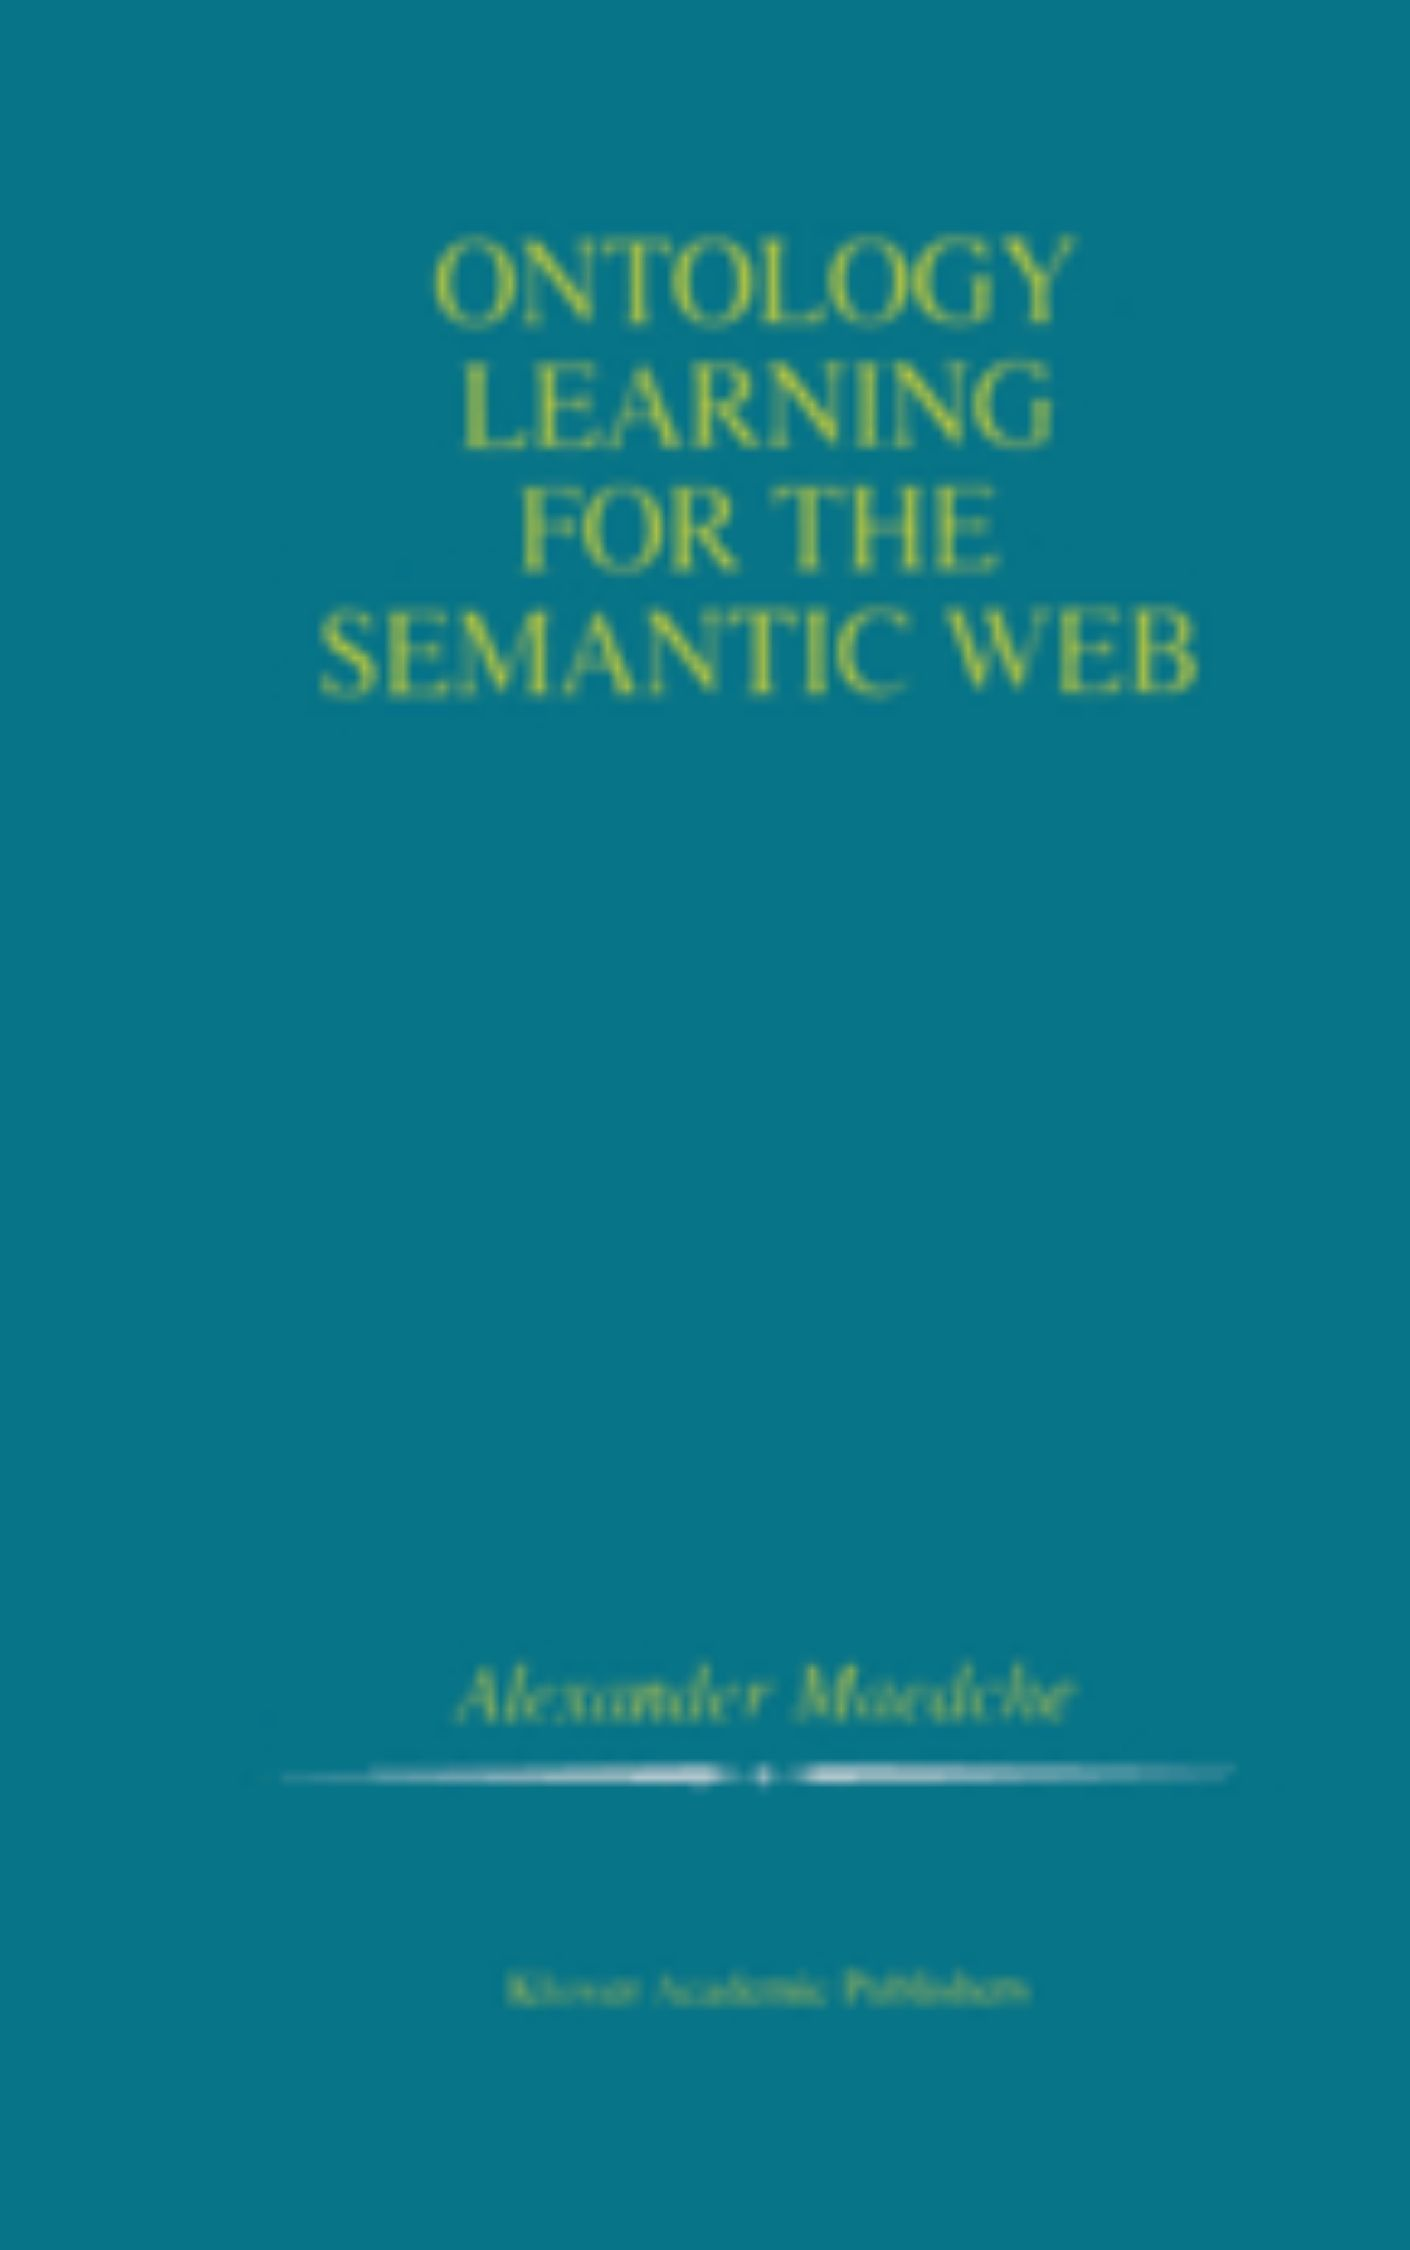 Ontology Learning for the Semantic Web by Alexander Maedche